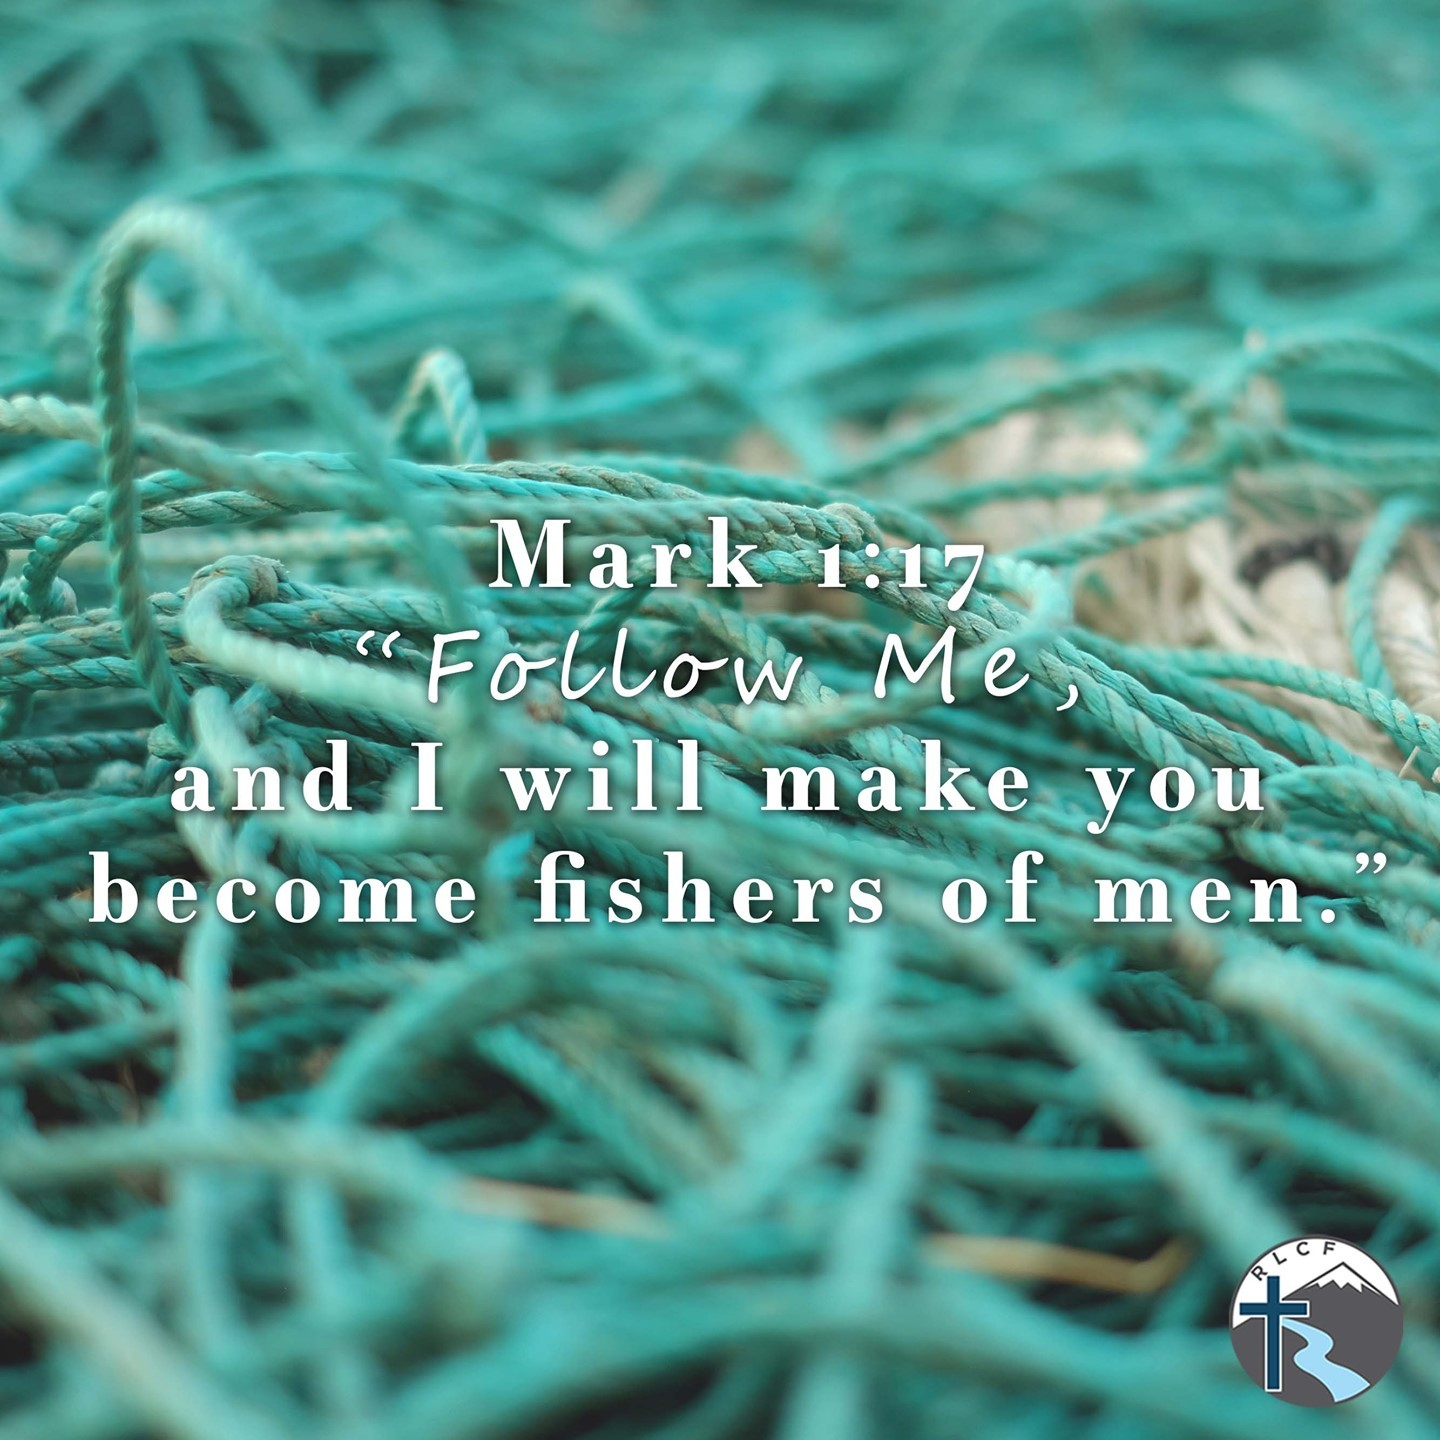 """""""Follow Me, and I will make you become fishers of men."""" —Mark 1:17 NASB"""